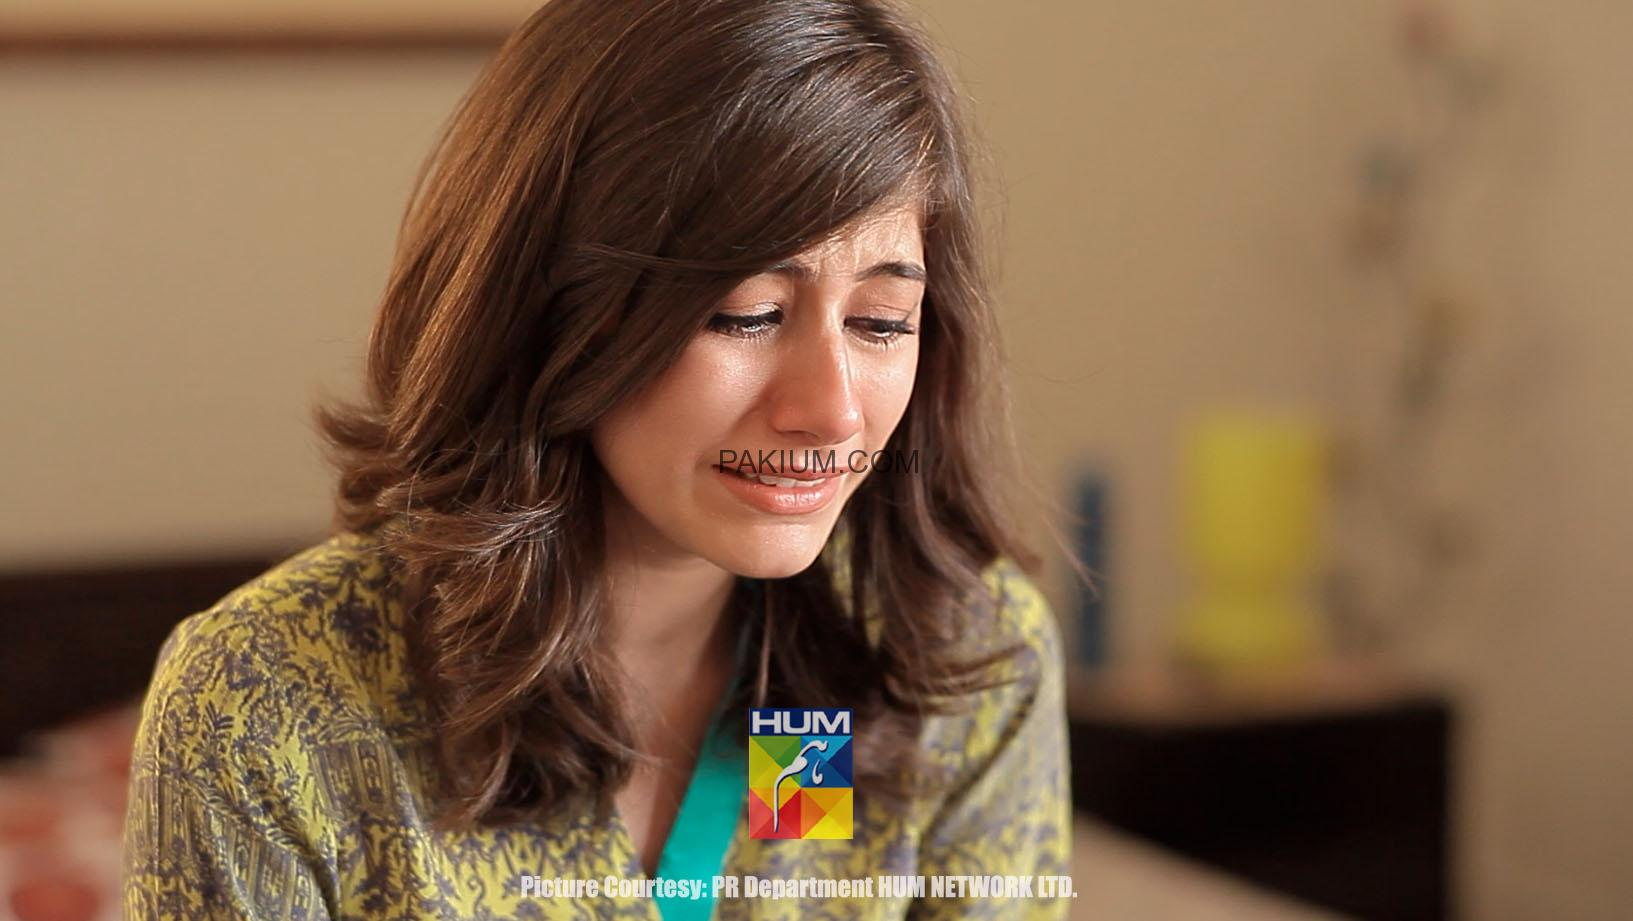 ru baru drama serial on hum tv synopsis and pictures